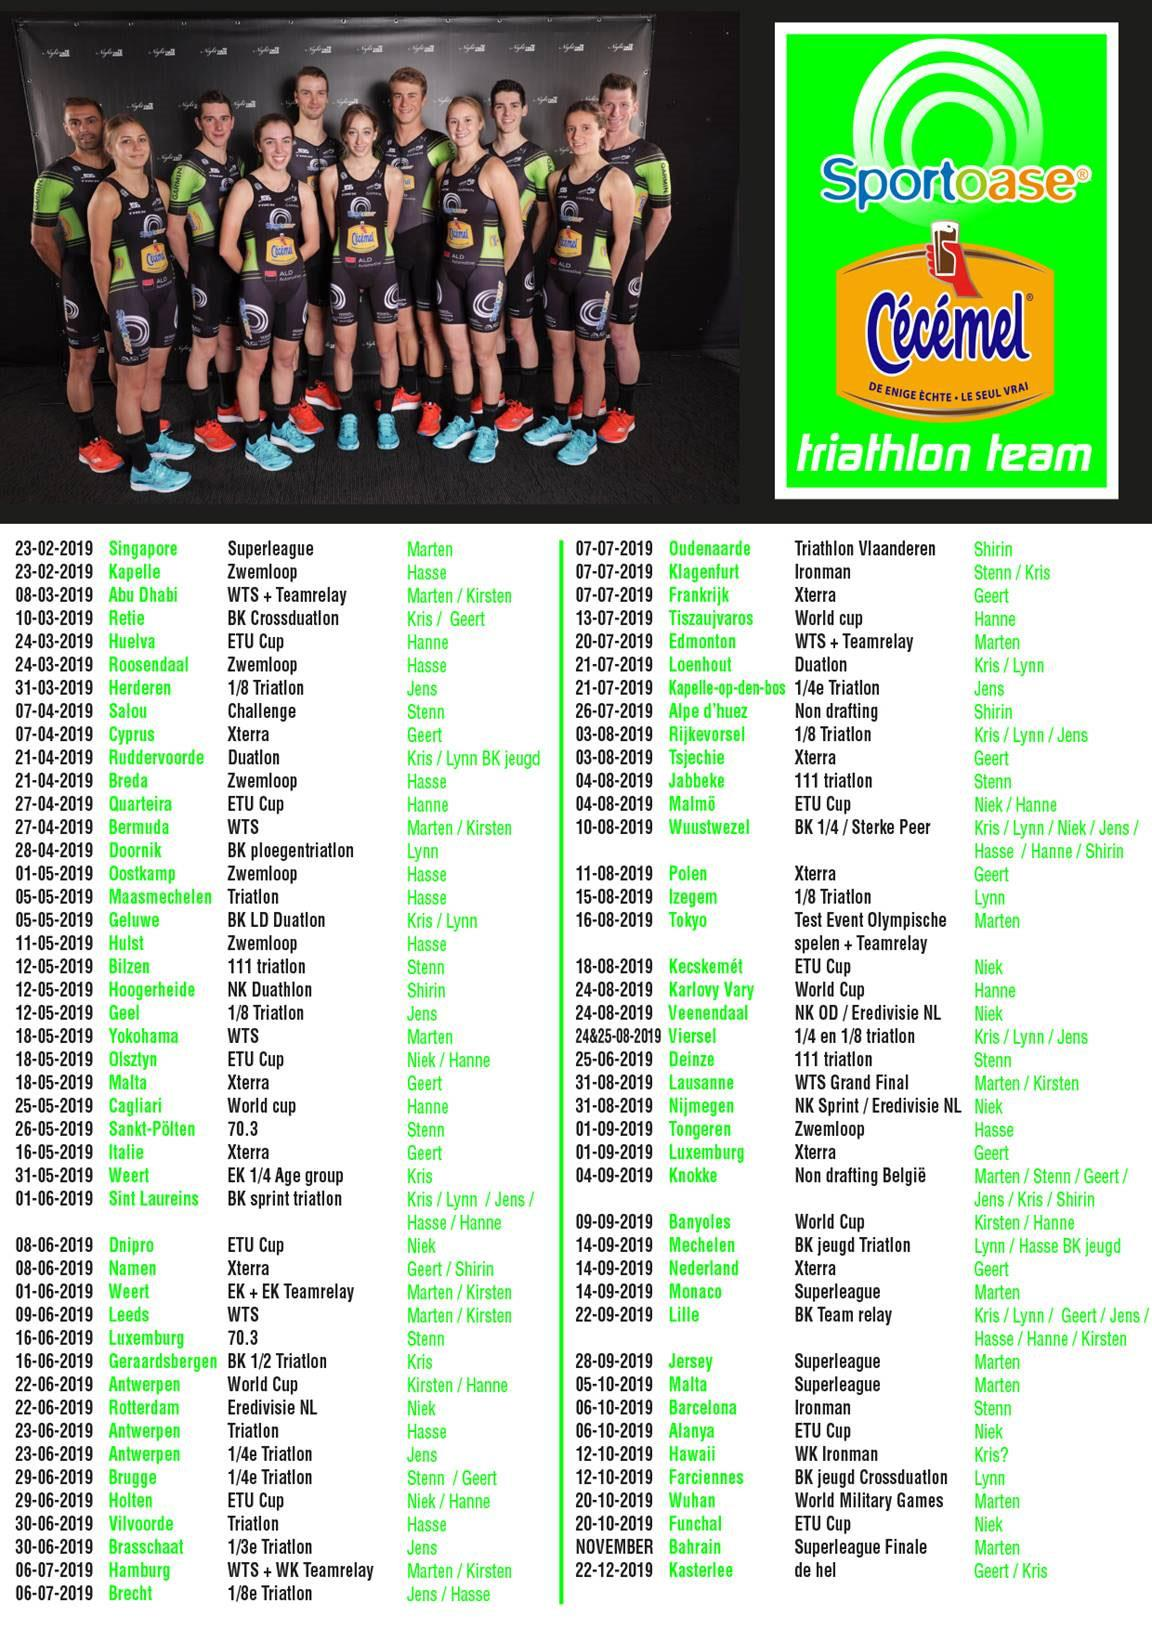 Sportoase-Cécémel Triathlon Team race calendar 2019